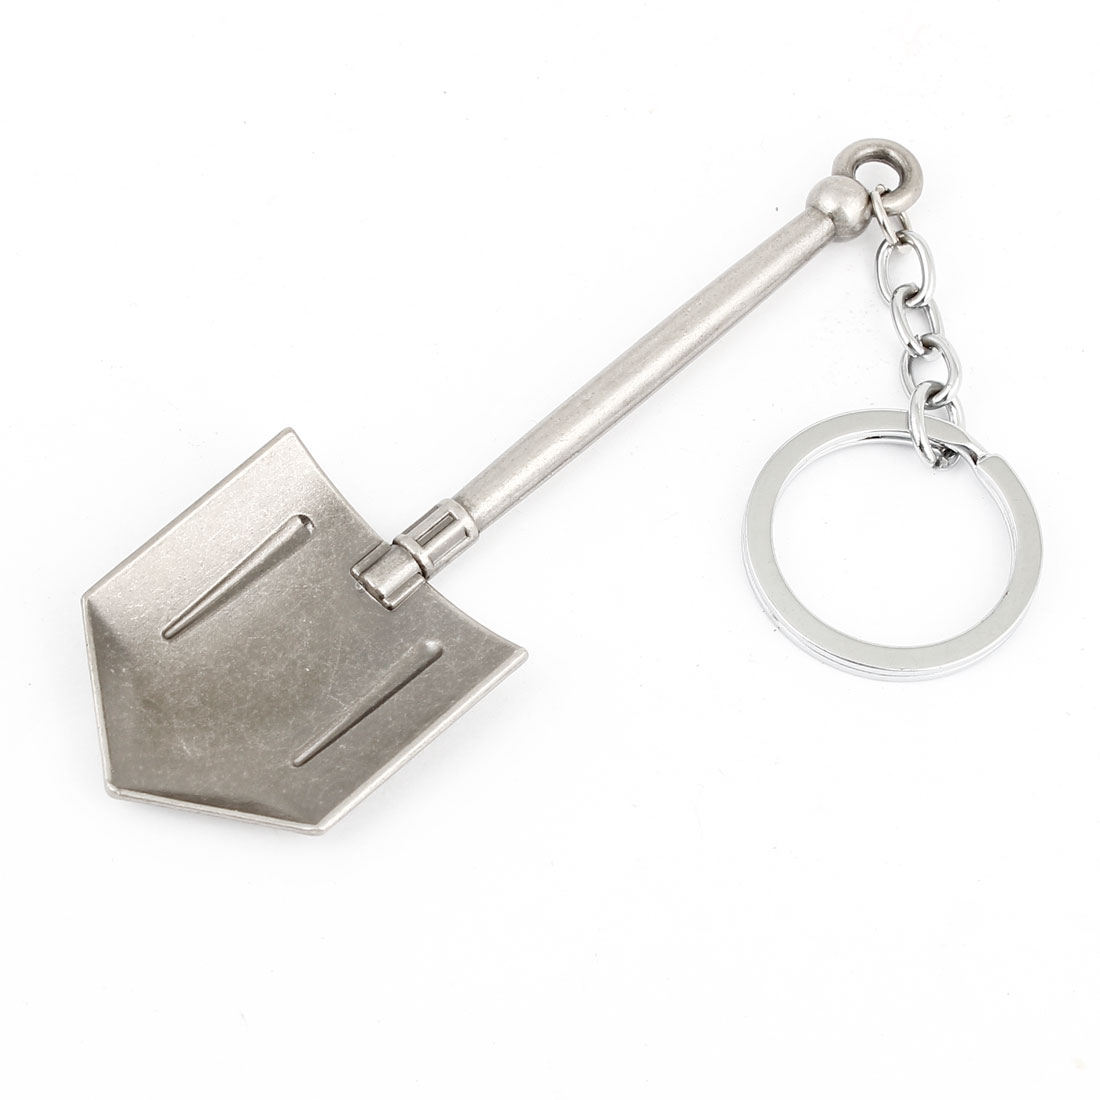 Gray Metal Shovel Design Pendant Keyring Key Chain Bag Decoration 6.3 Inch Long